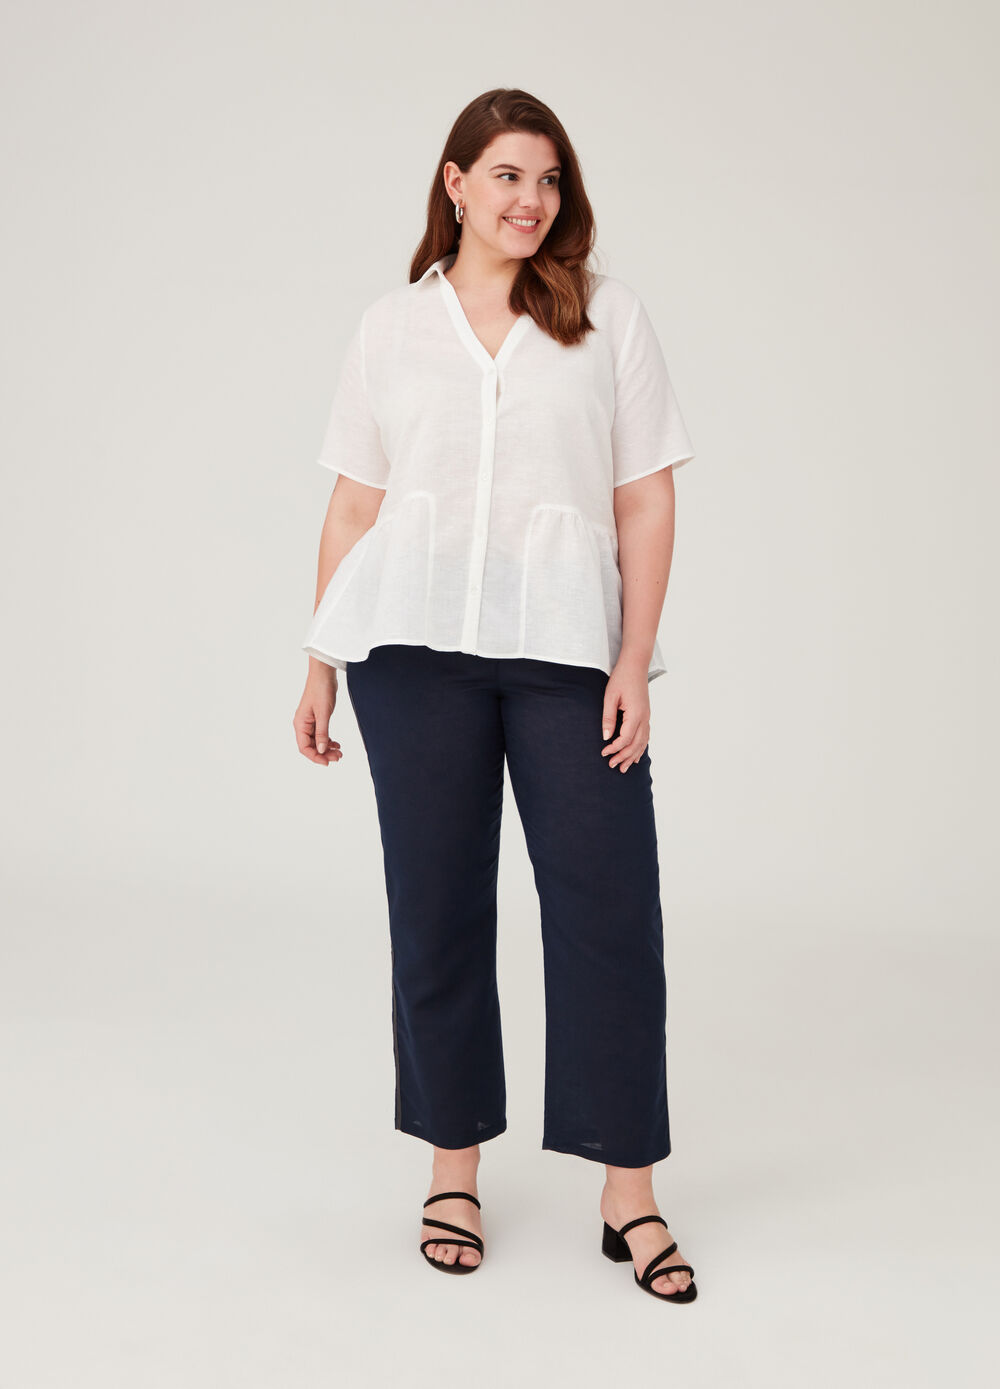 Curvy short-sleeved shirt